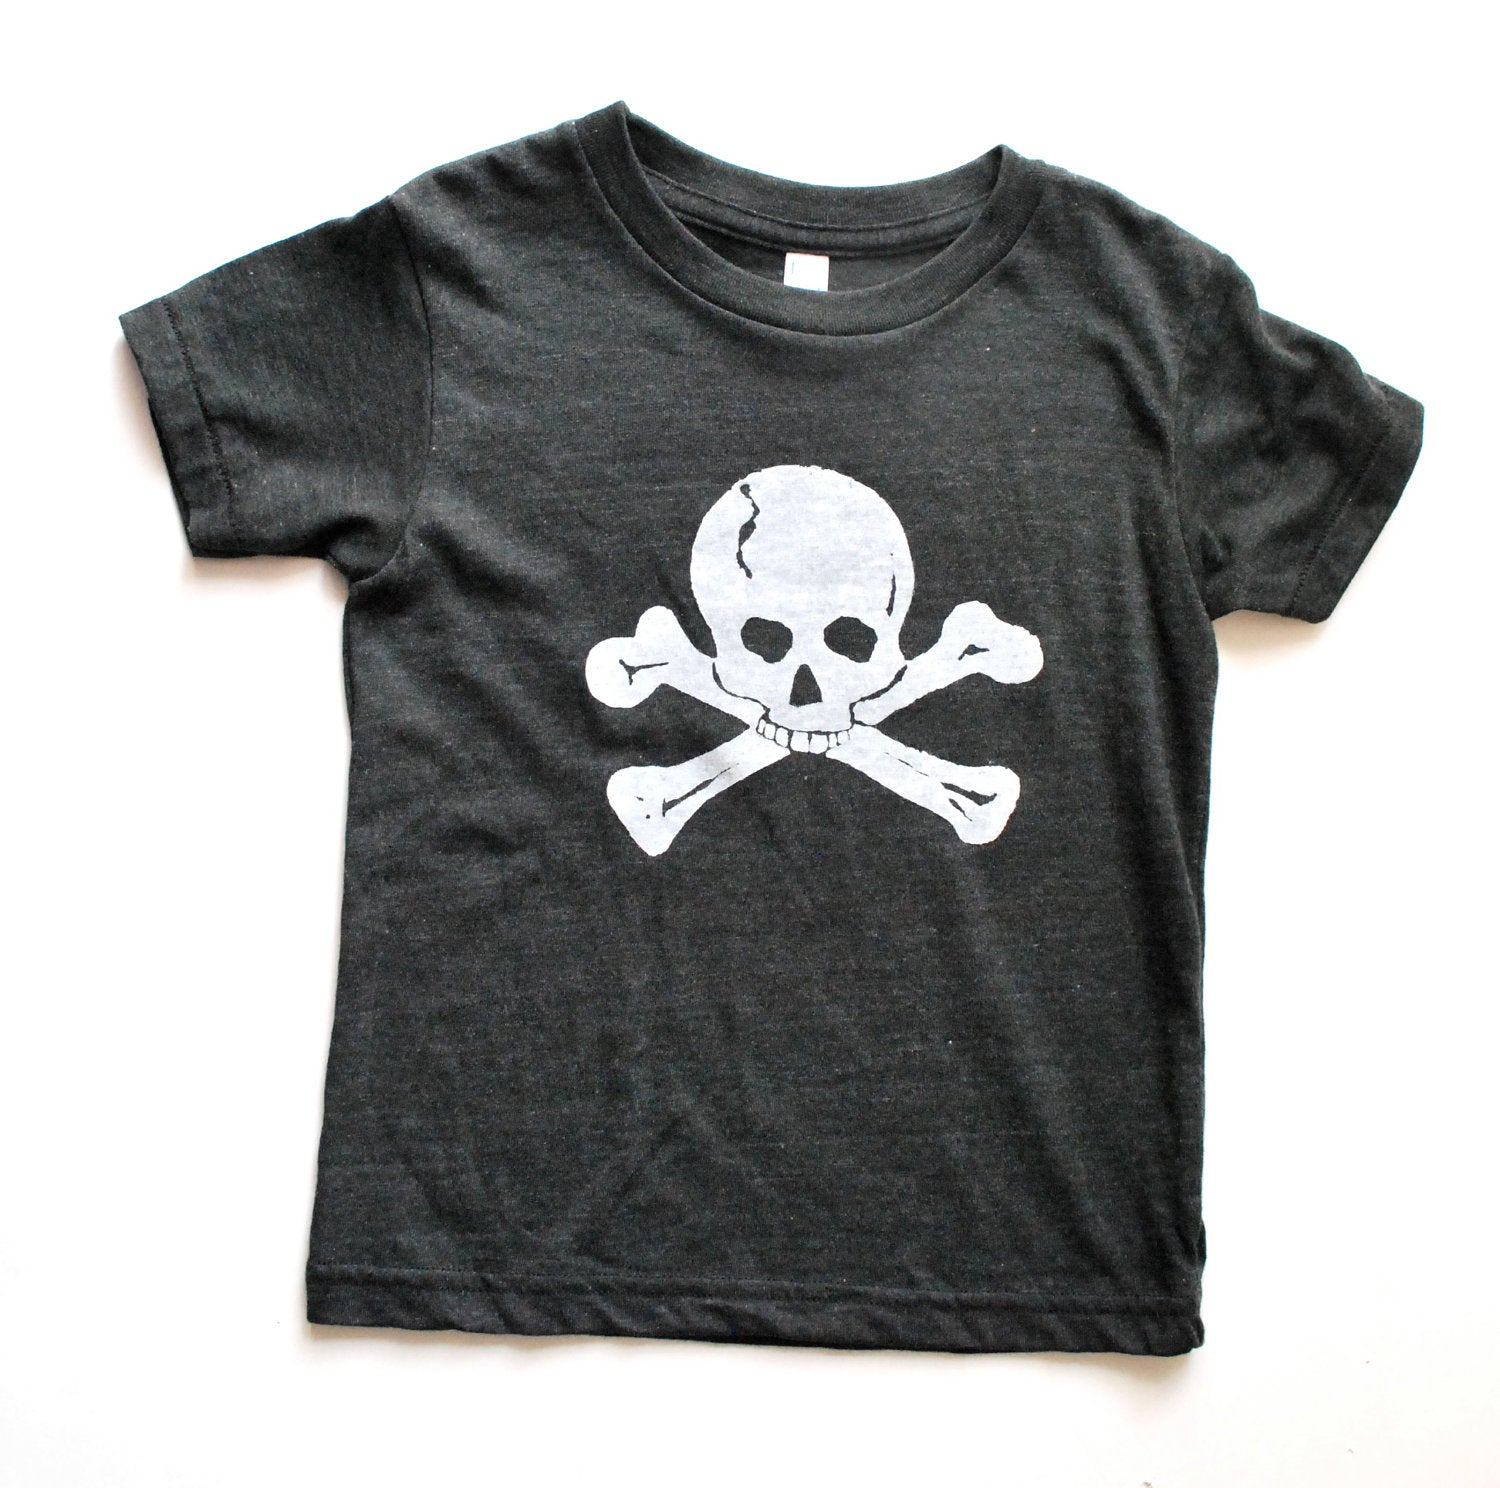 Cute Nautical Mom with Hip and Cool Skull T Shirt Pirate Theme Birthday Party Shirt